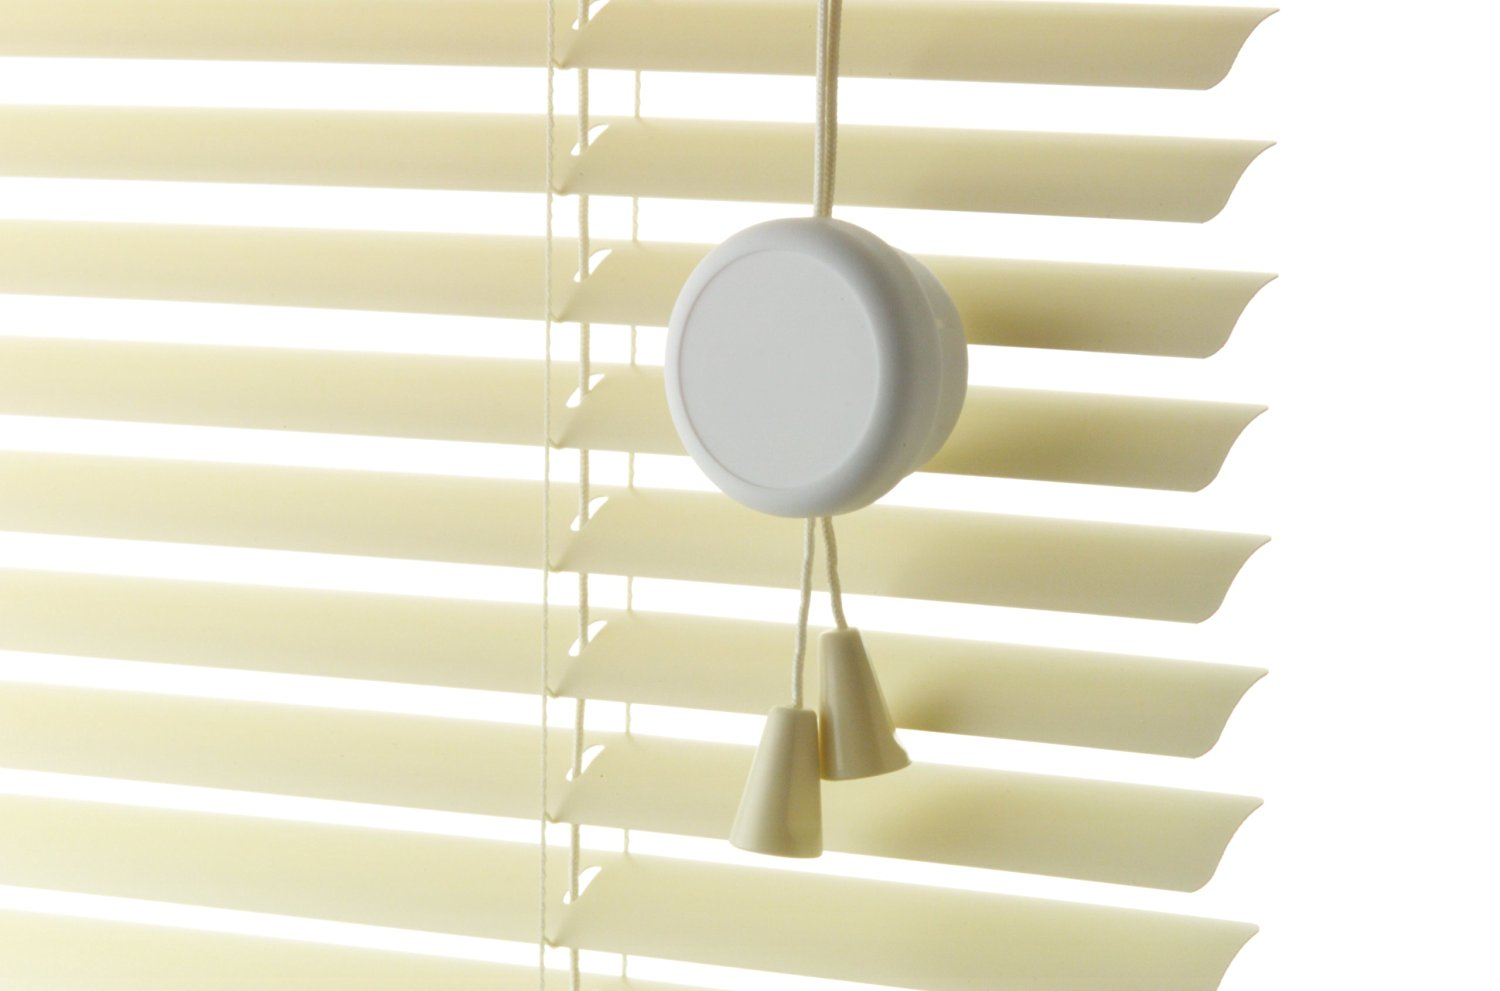 curtain or blinds cord keeper